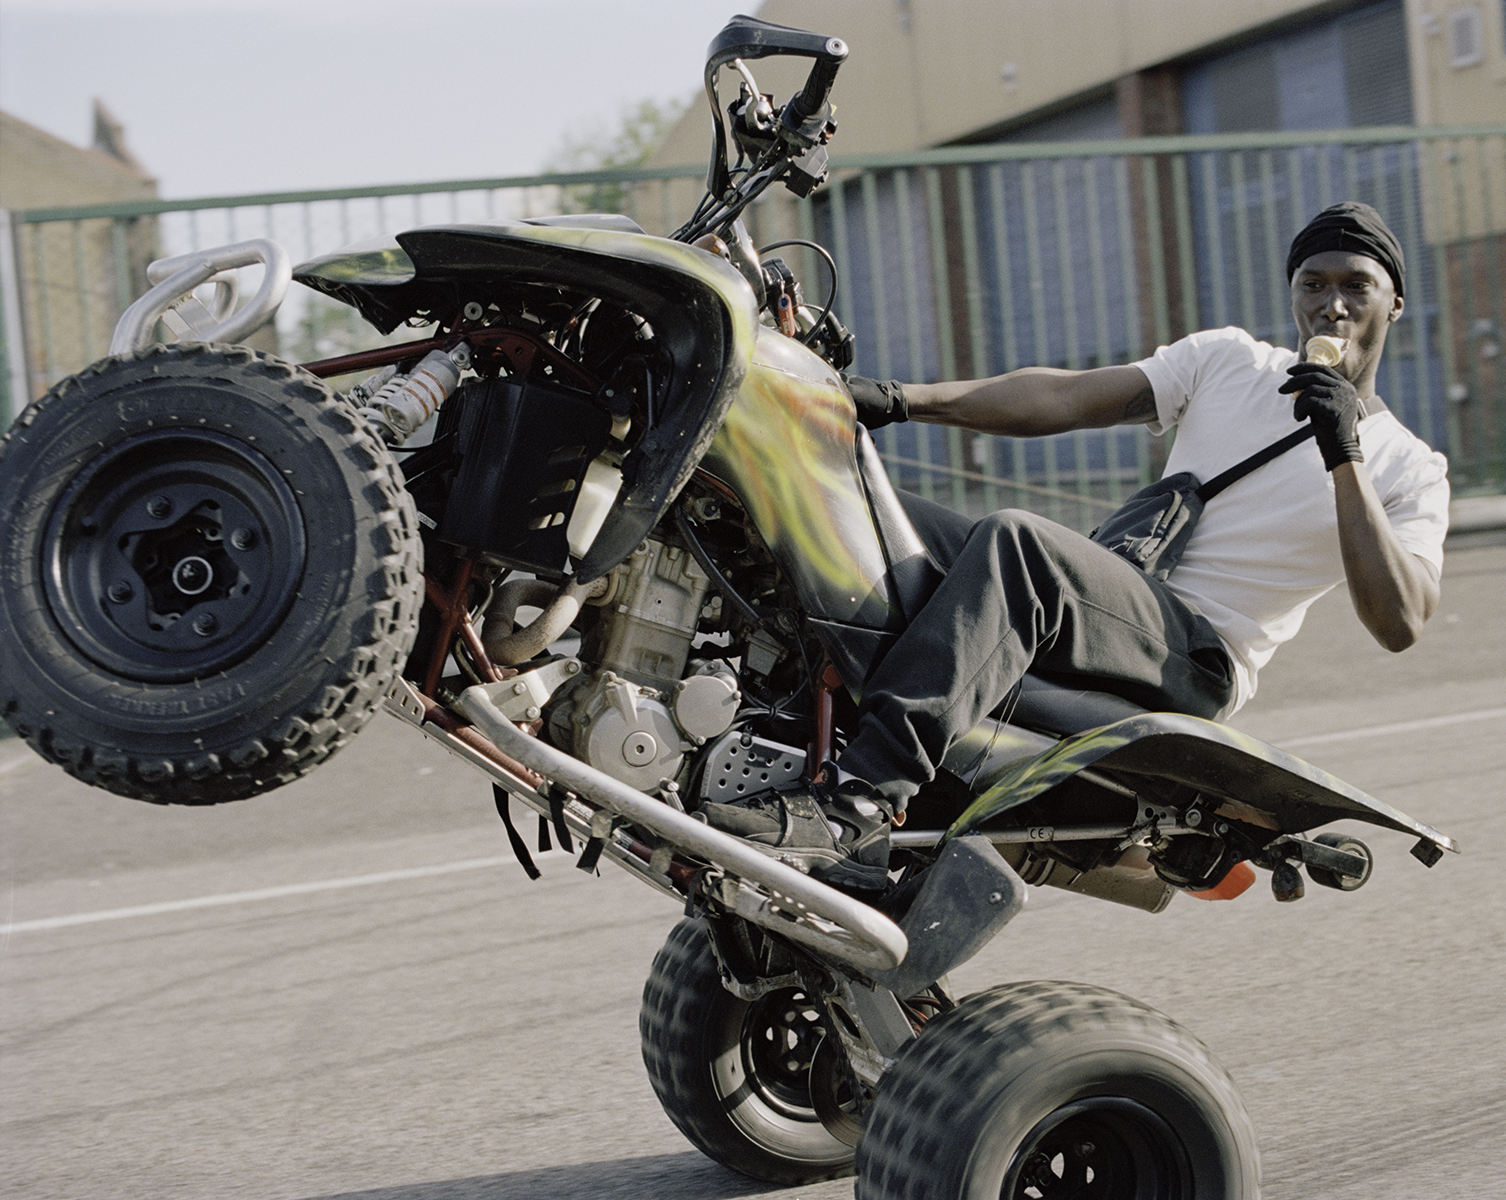 London's 'bad-boy riders' and quad bikers shown at their 'most rebellious' demonstrates the subculture in many ways